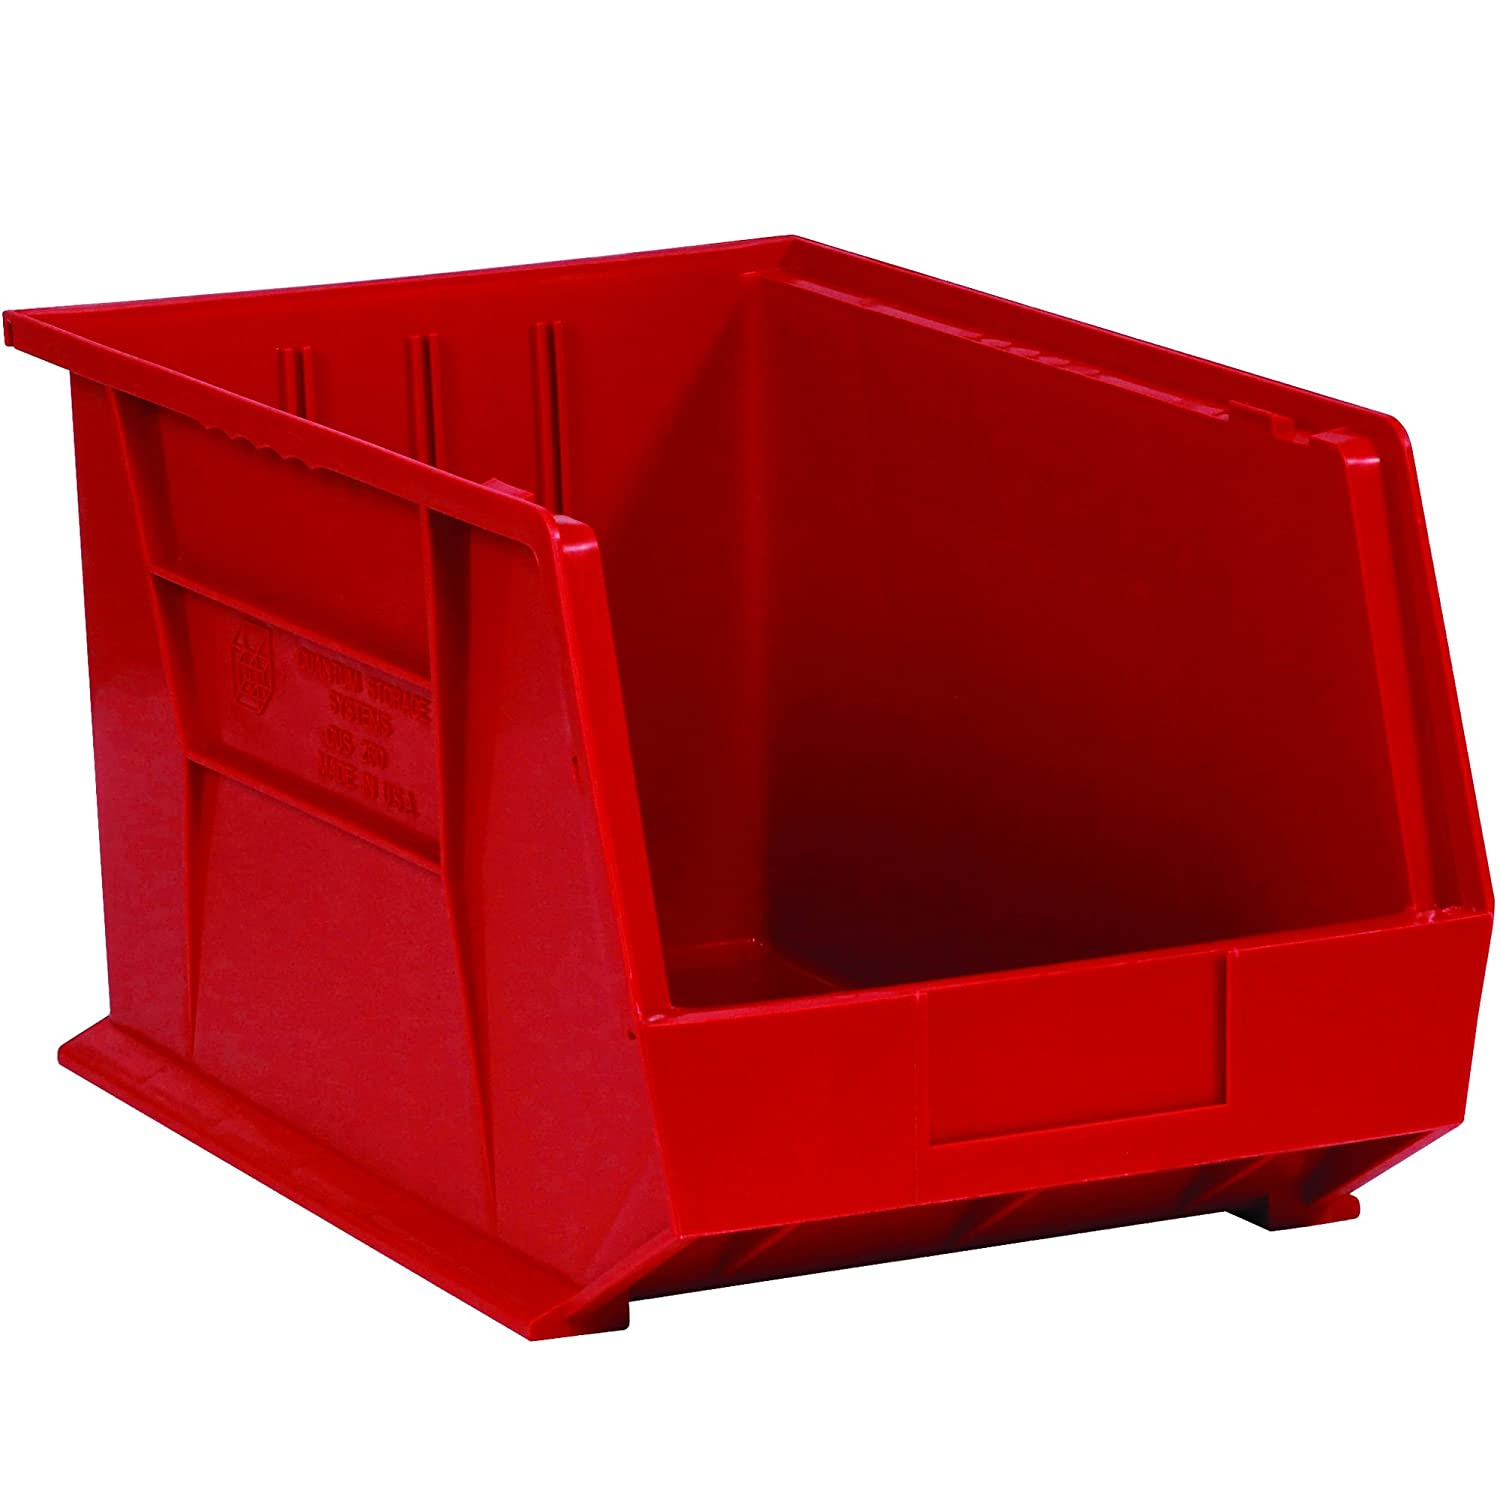 Ship Now Supply SNBINP1087R Plastic Stack Boxes 3 10 Spring new Super sale period limited work Bin Hang